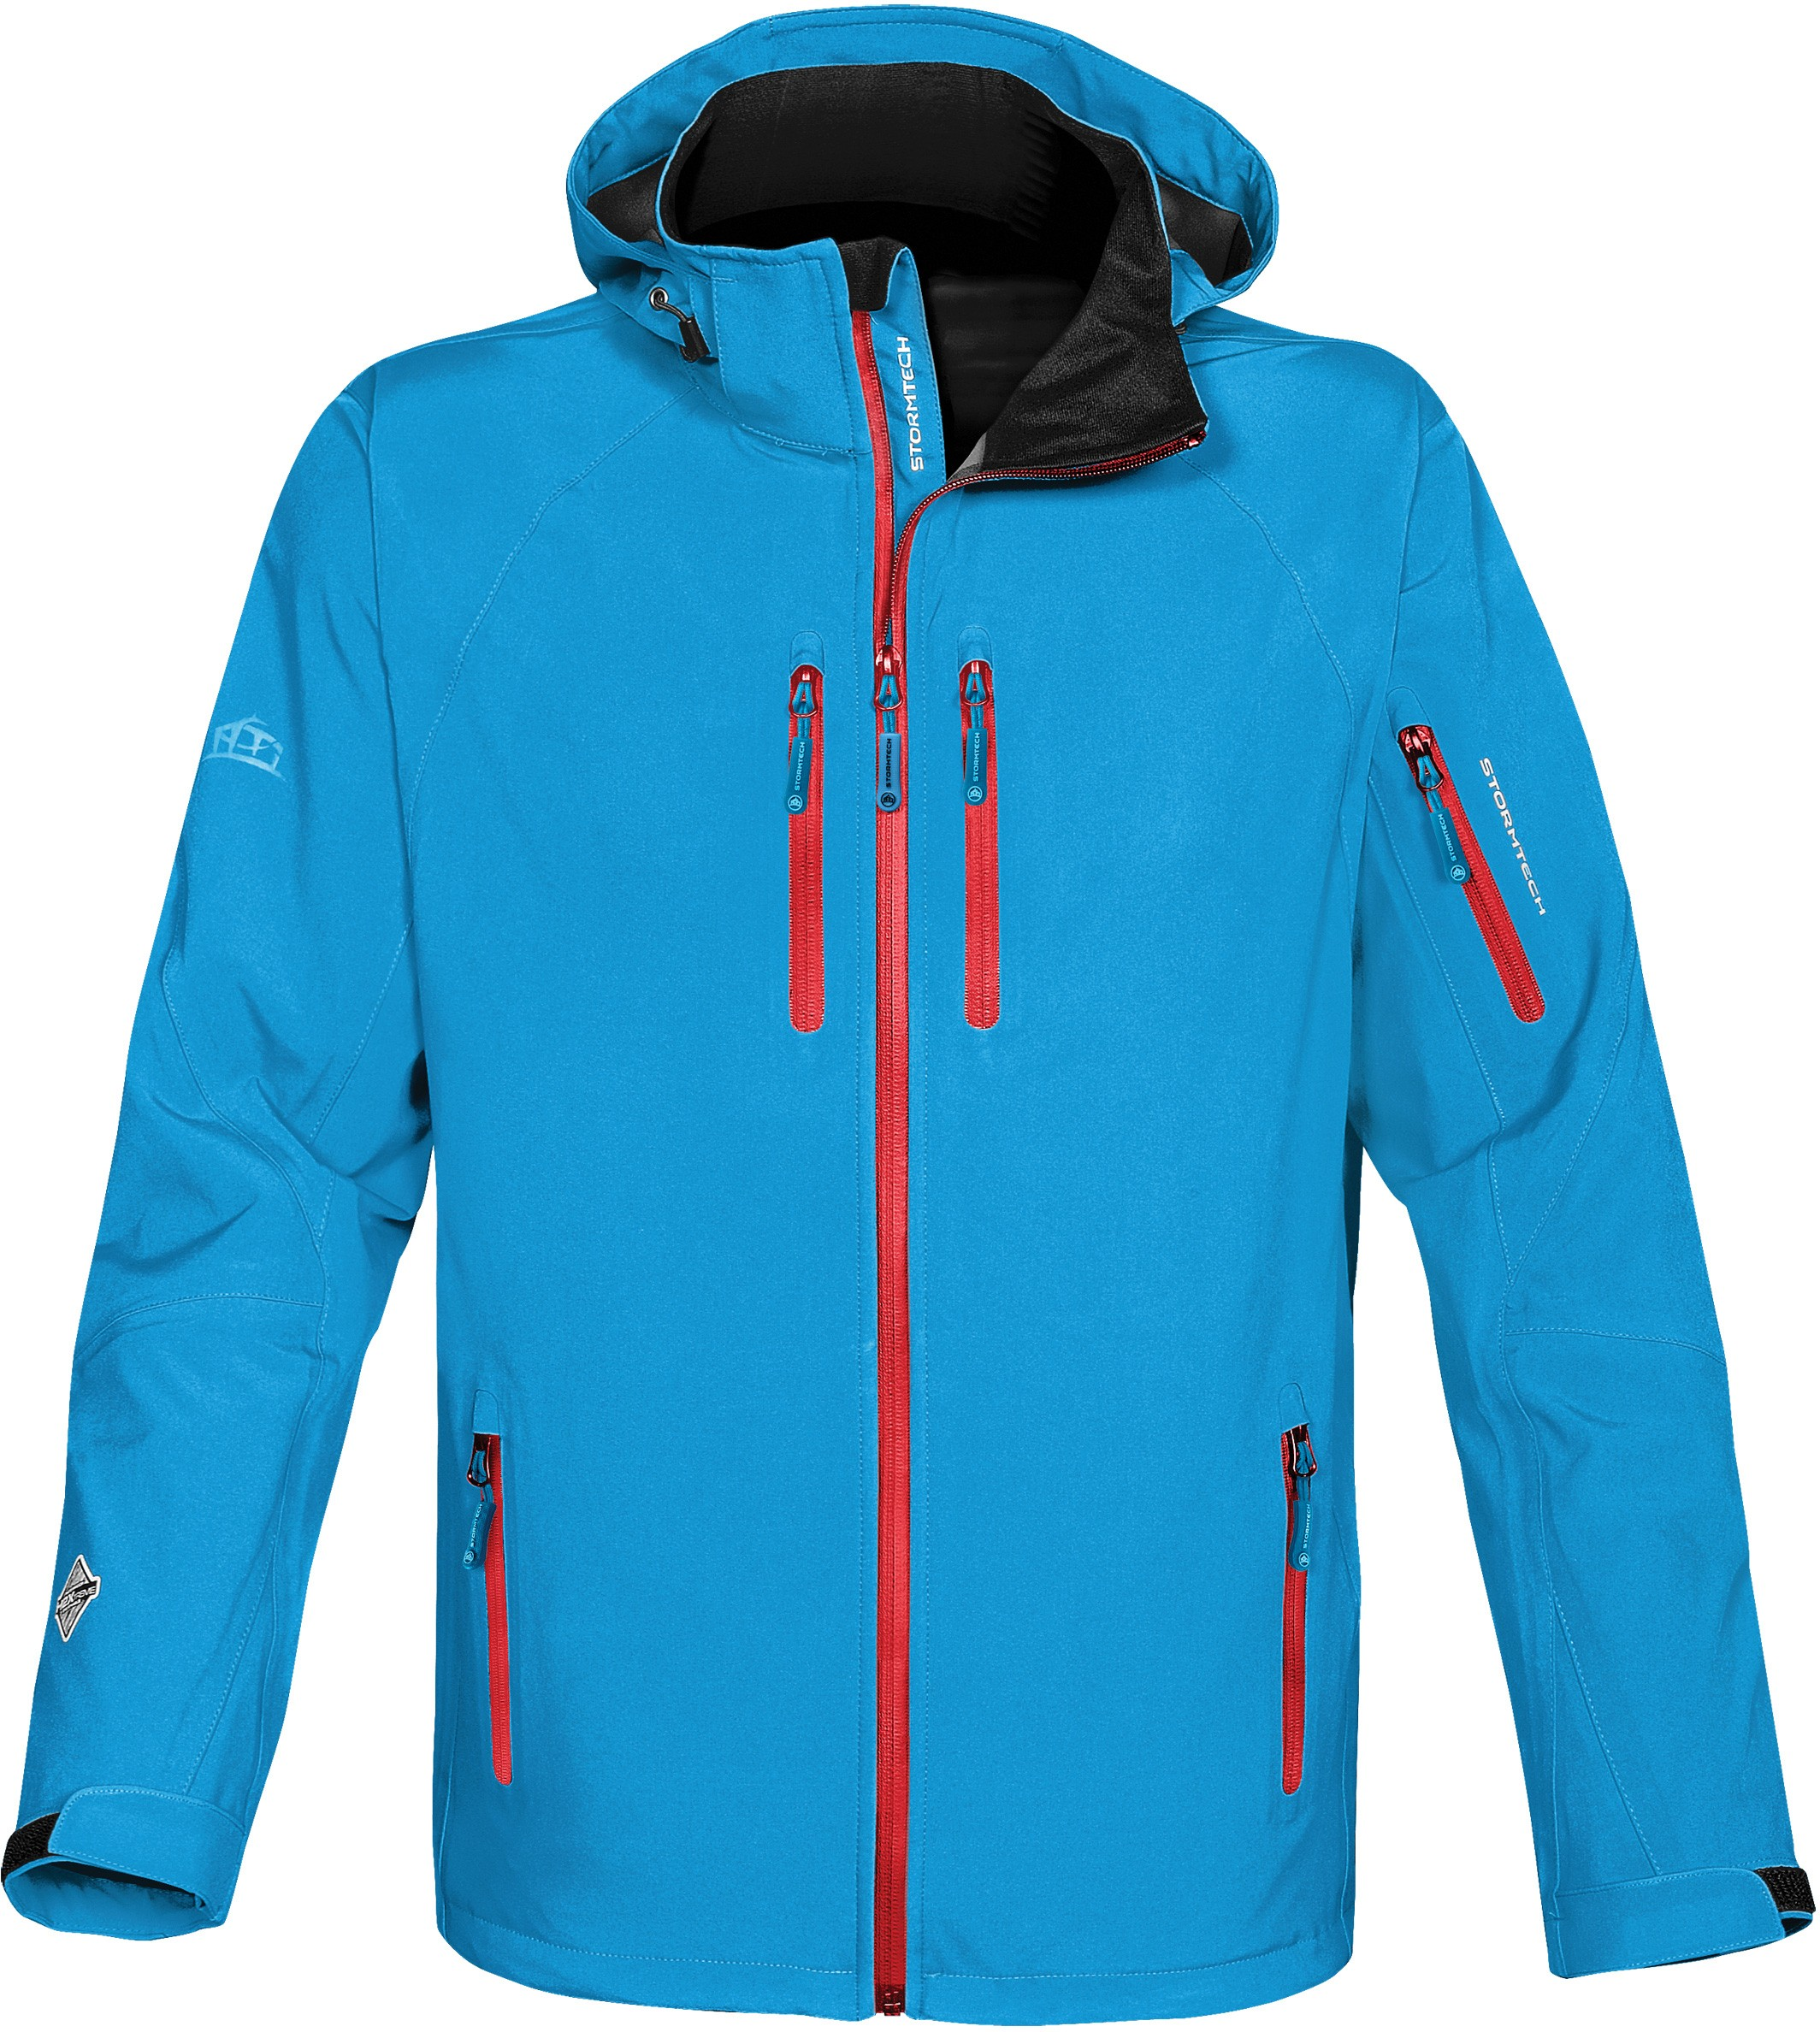 MLJSTXB-2M- MENS EXPEDITION SOFTSHELL